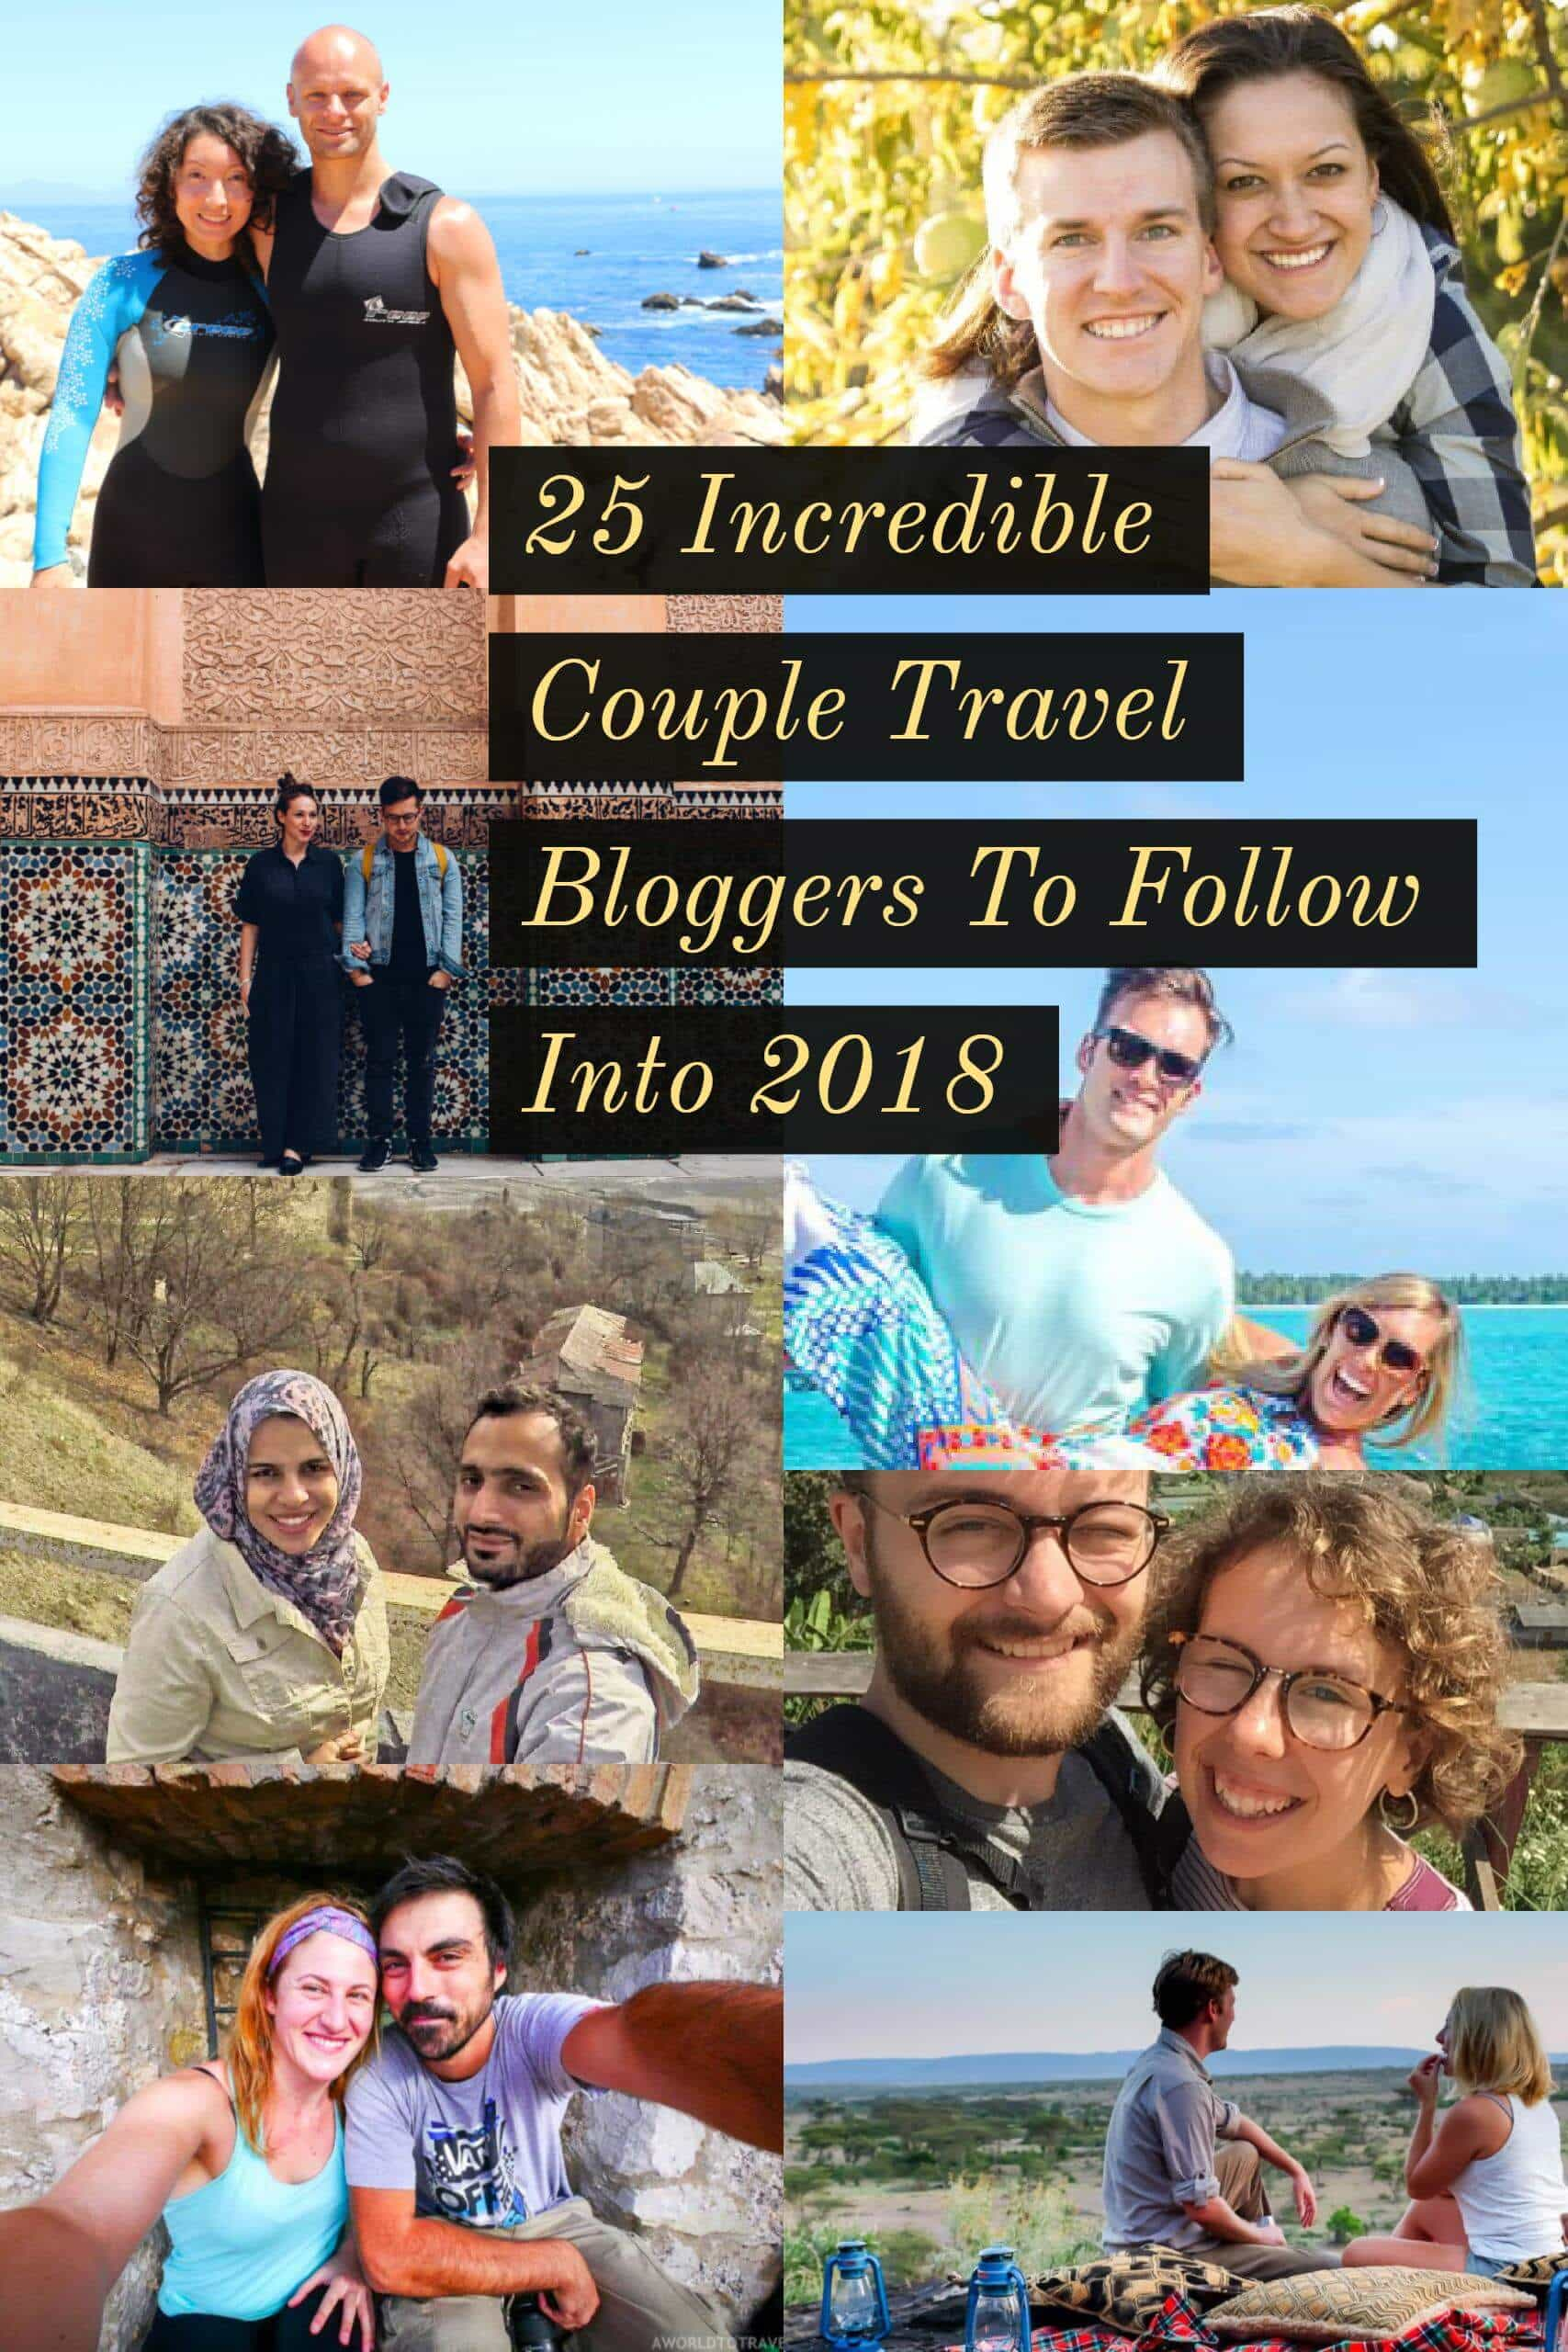 25 Incredible Couple Travel Bloggers To Follow Into 2018